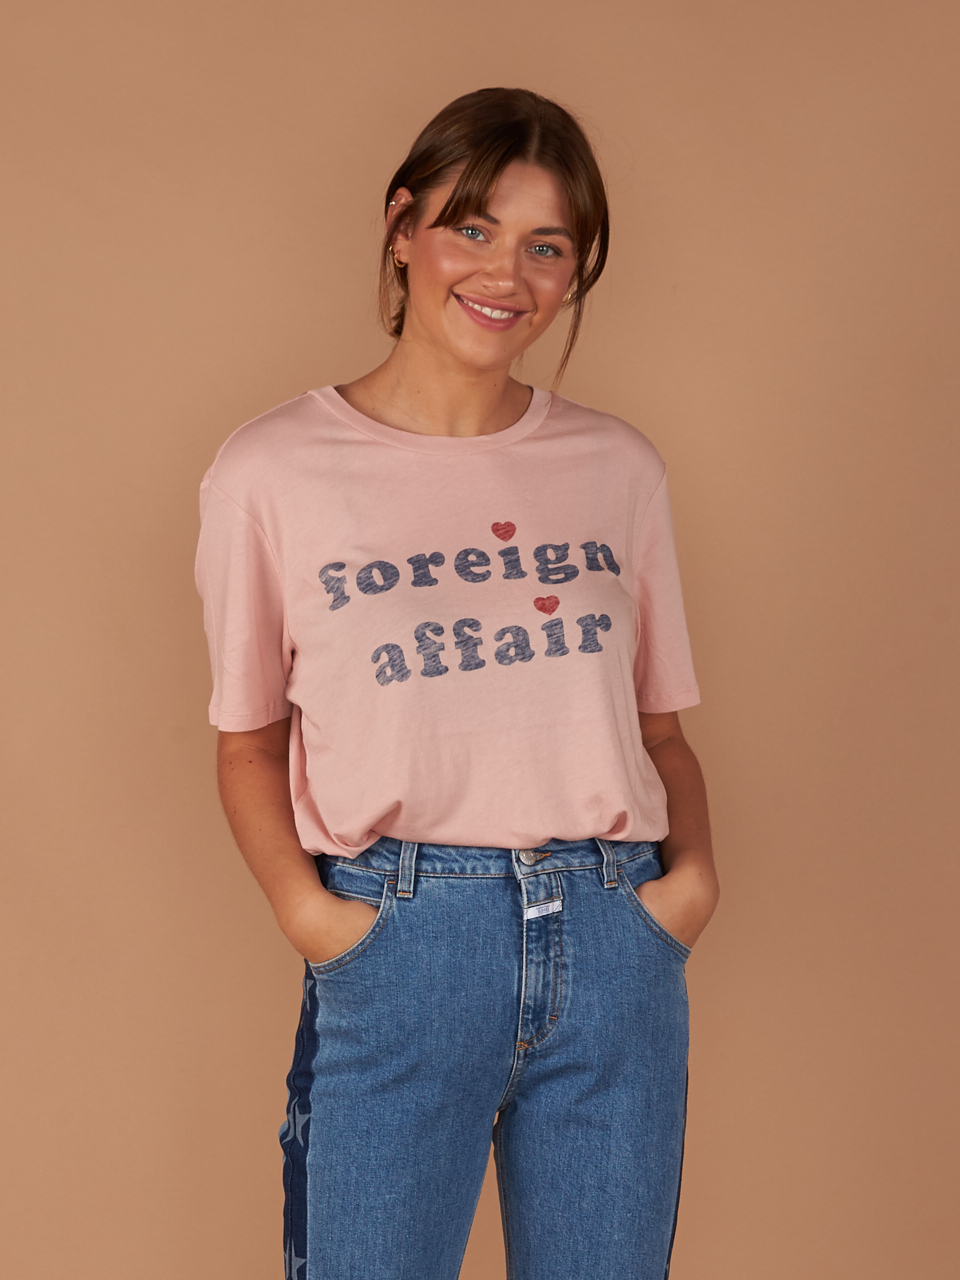 Foreign dating